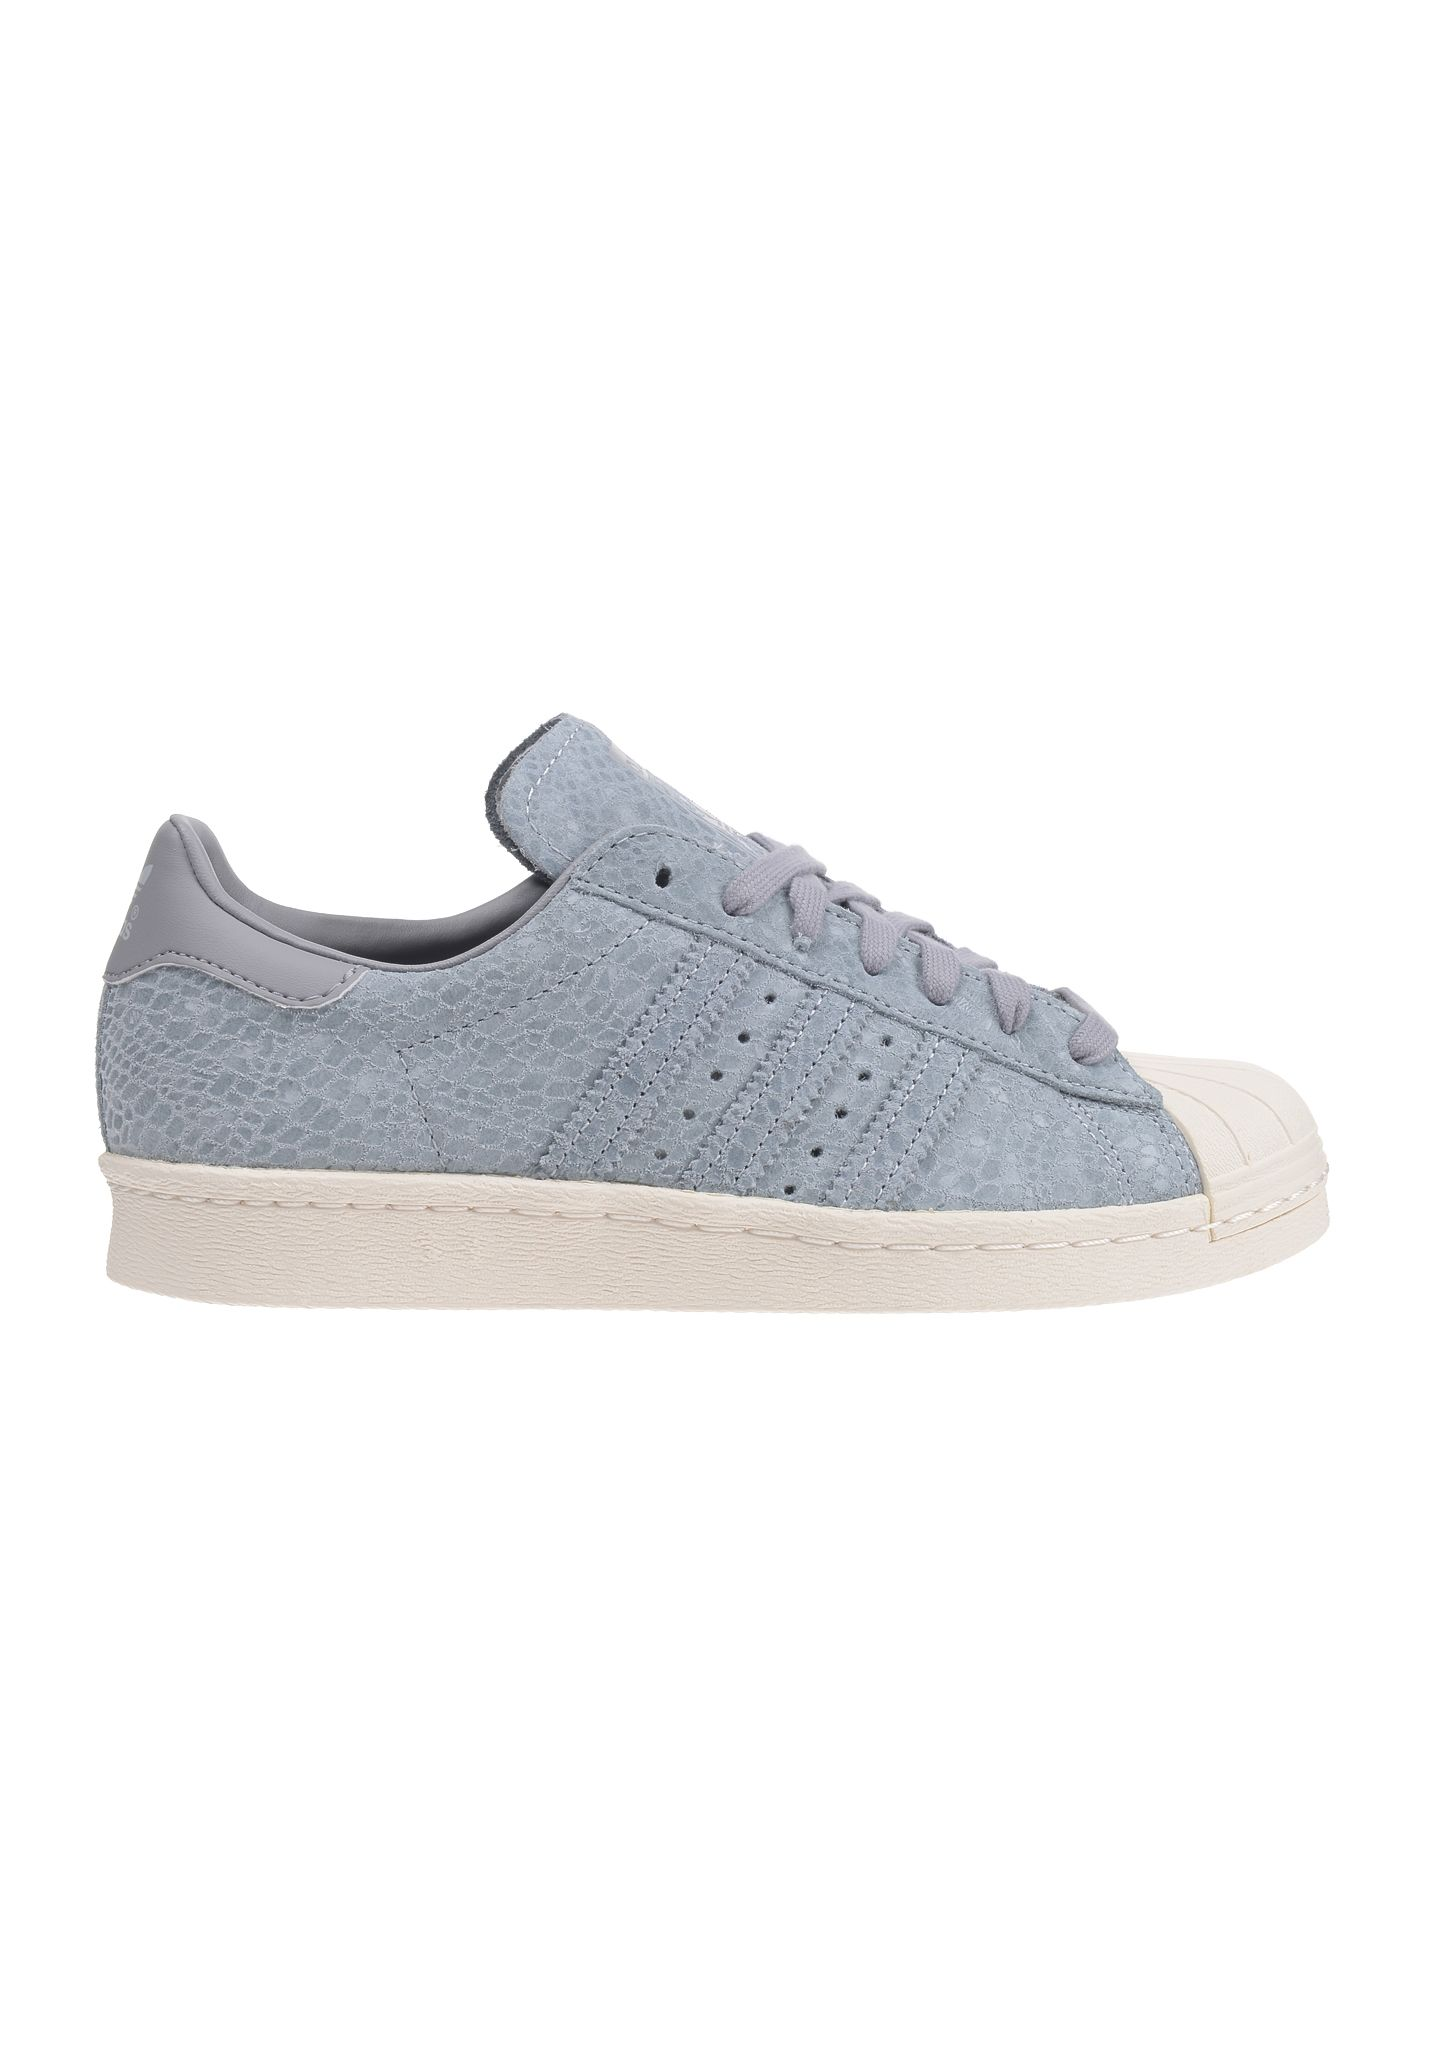 Adidas Superstar 80s Grau